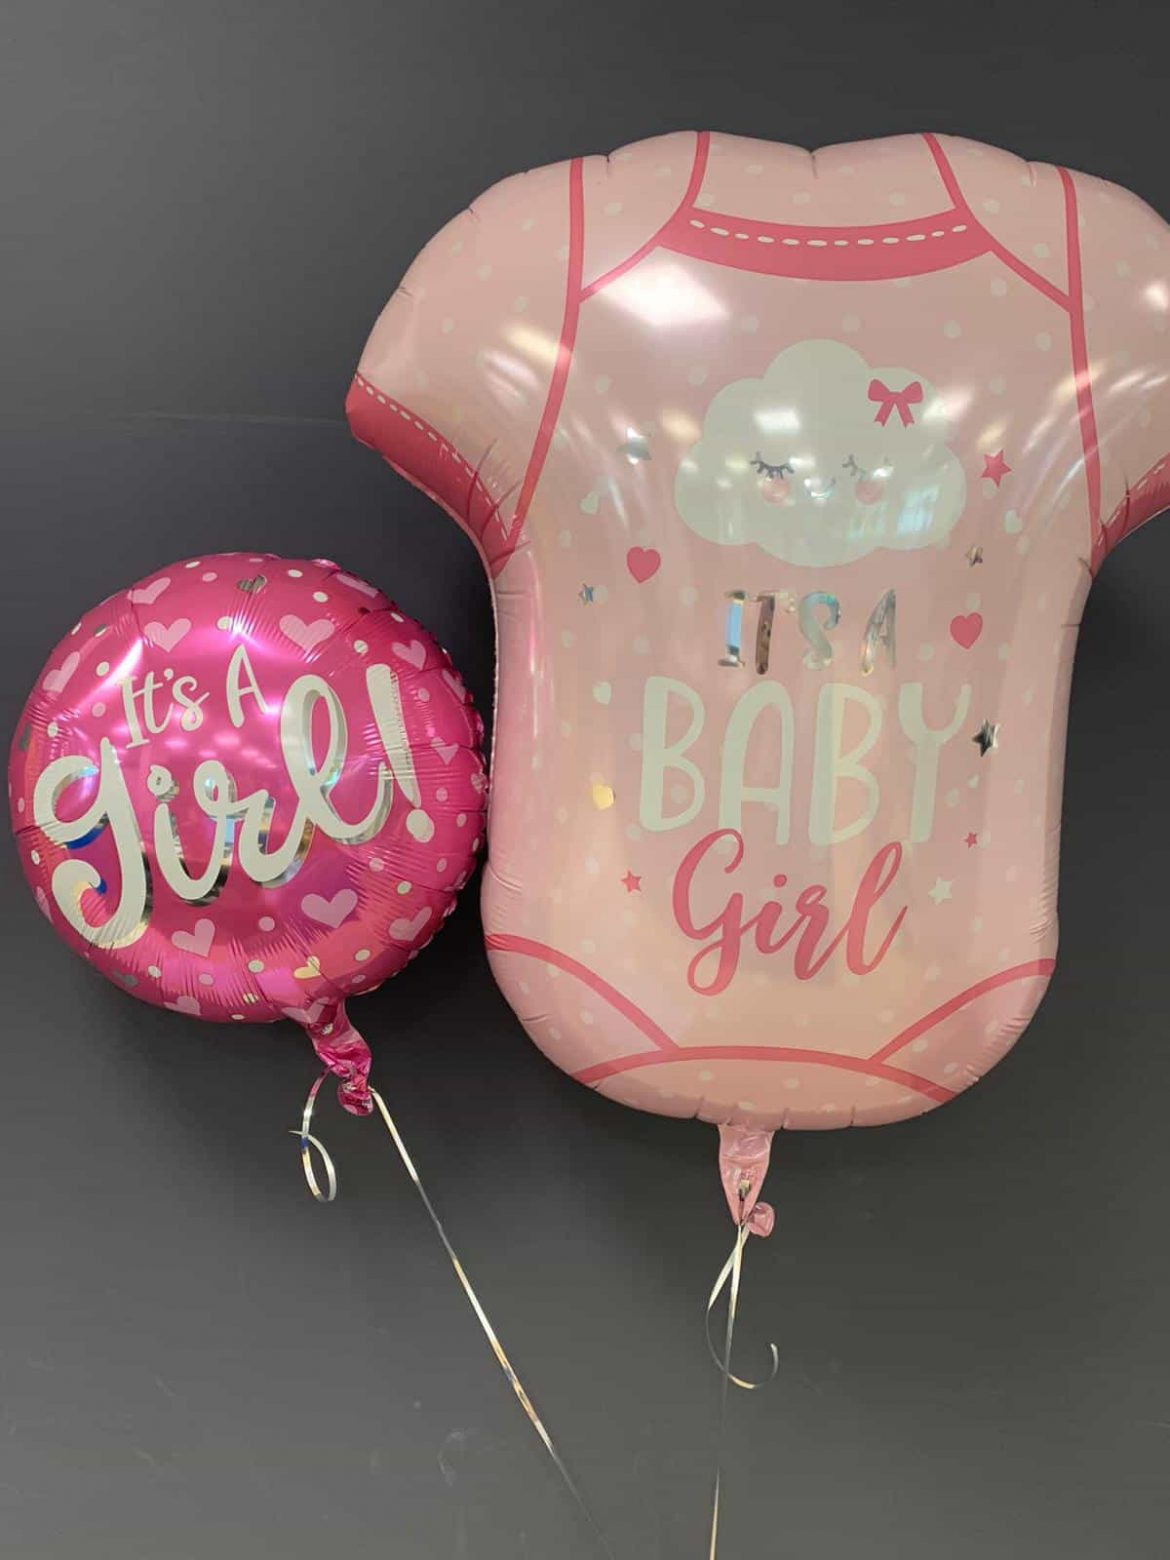 Babygirl € 6,90<br>Its a Girl € 5,50 1